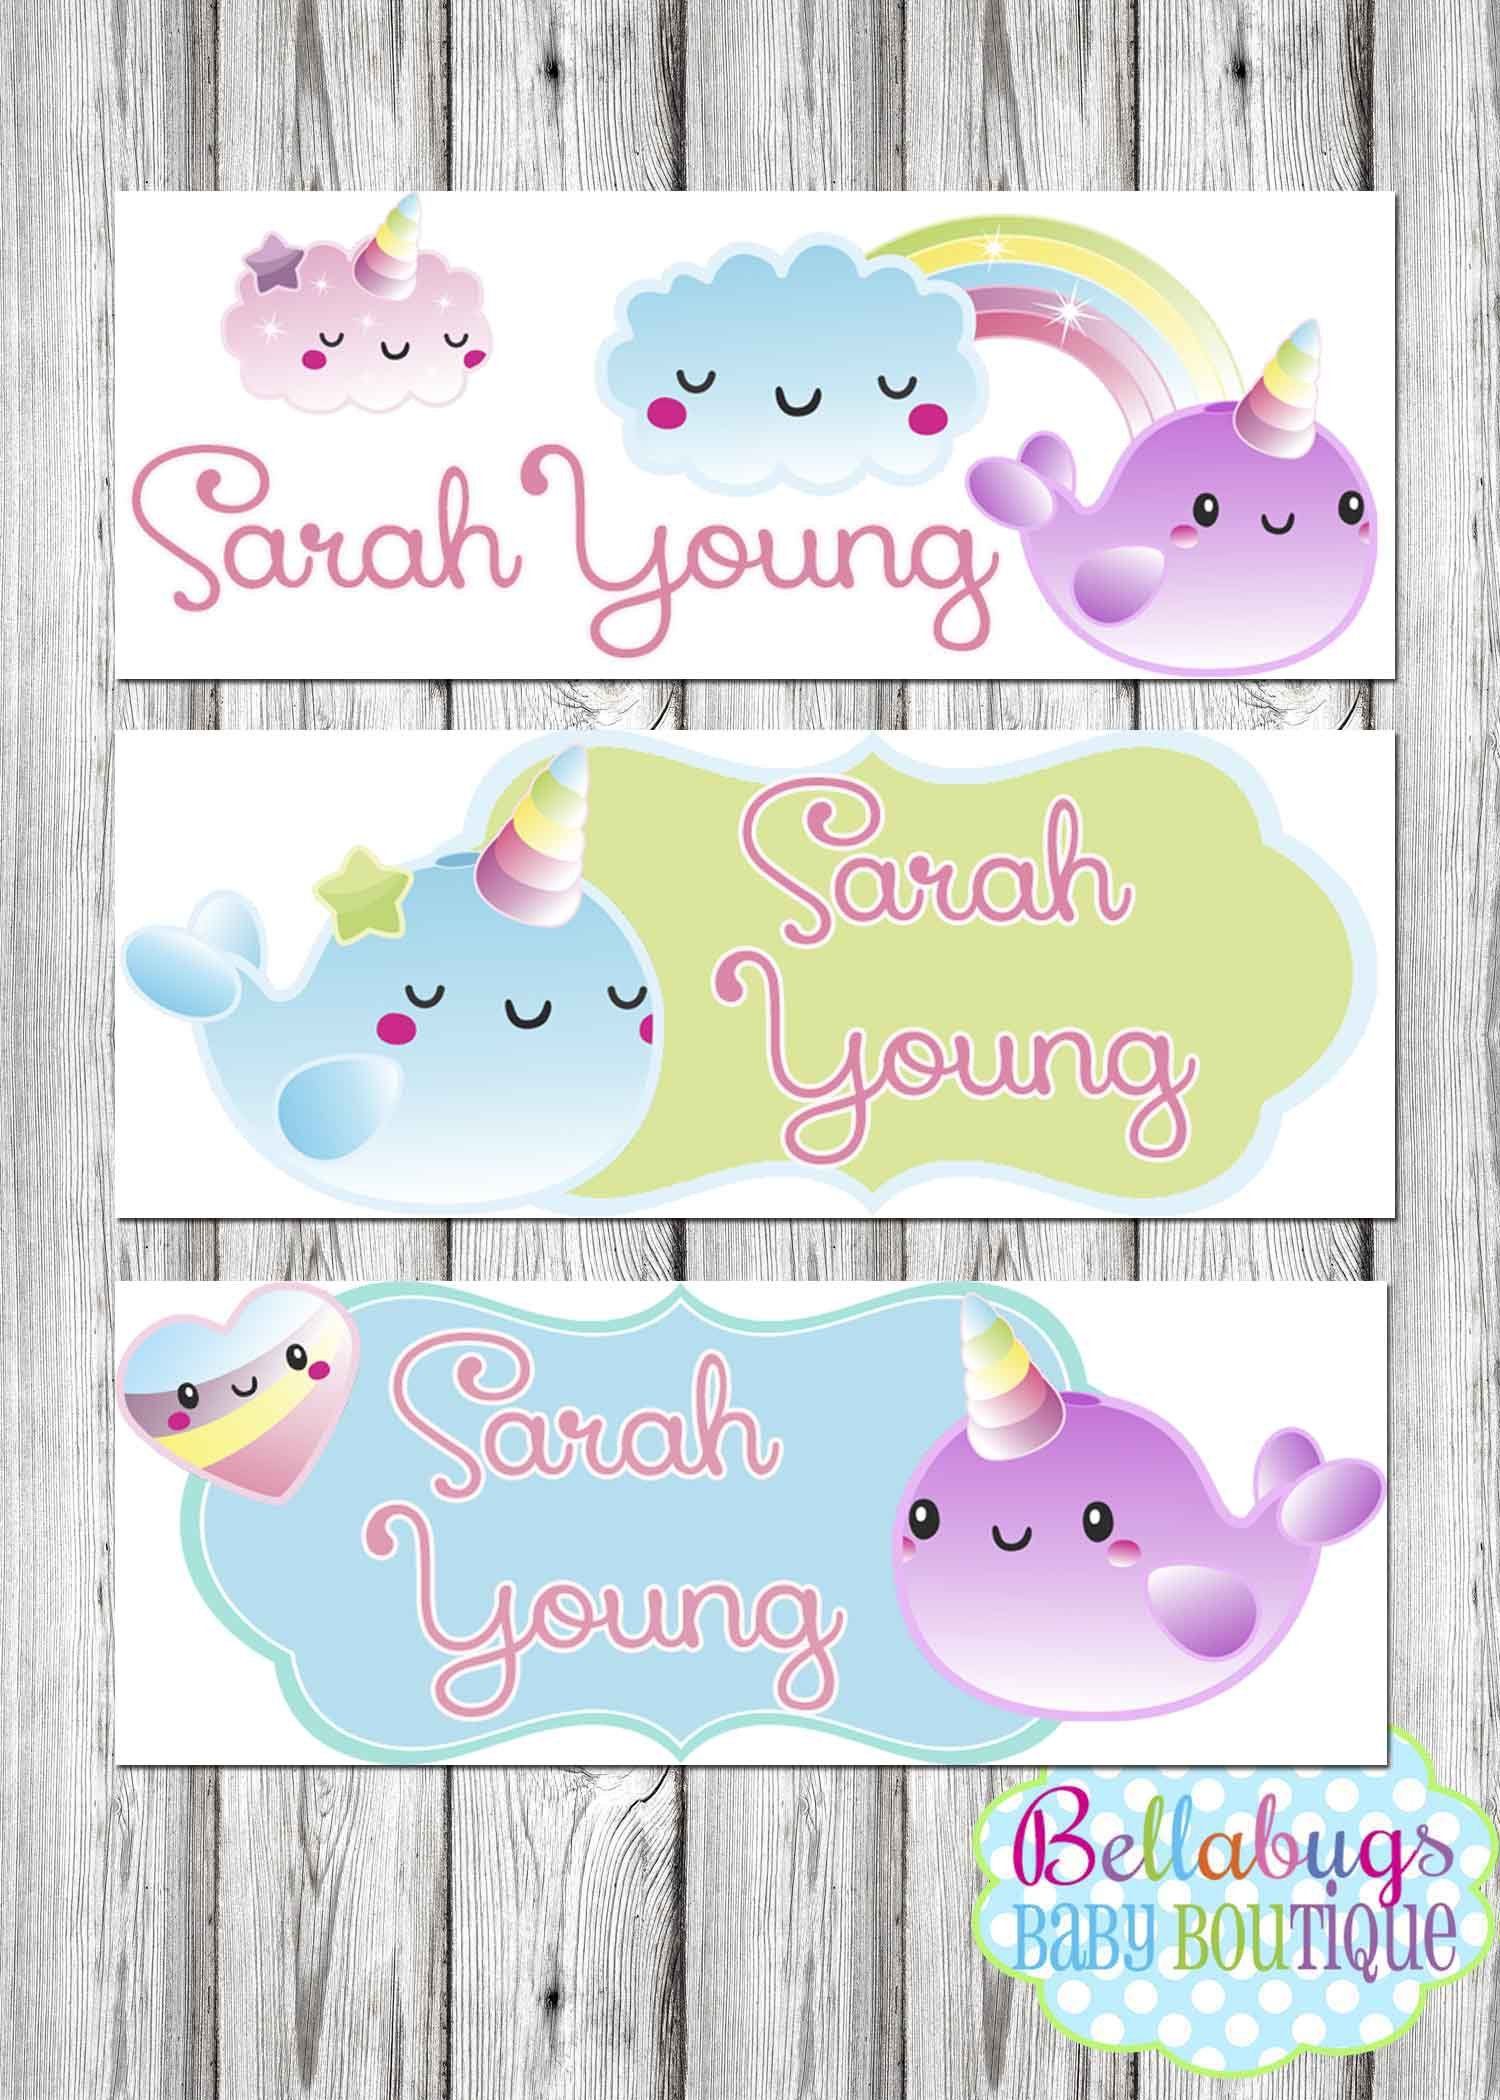 eb0cb9b2df5f Narwhal Unicorn Name Labels - 30 Labels - Daycare Labels - School ...